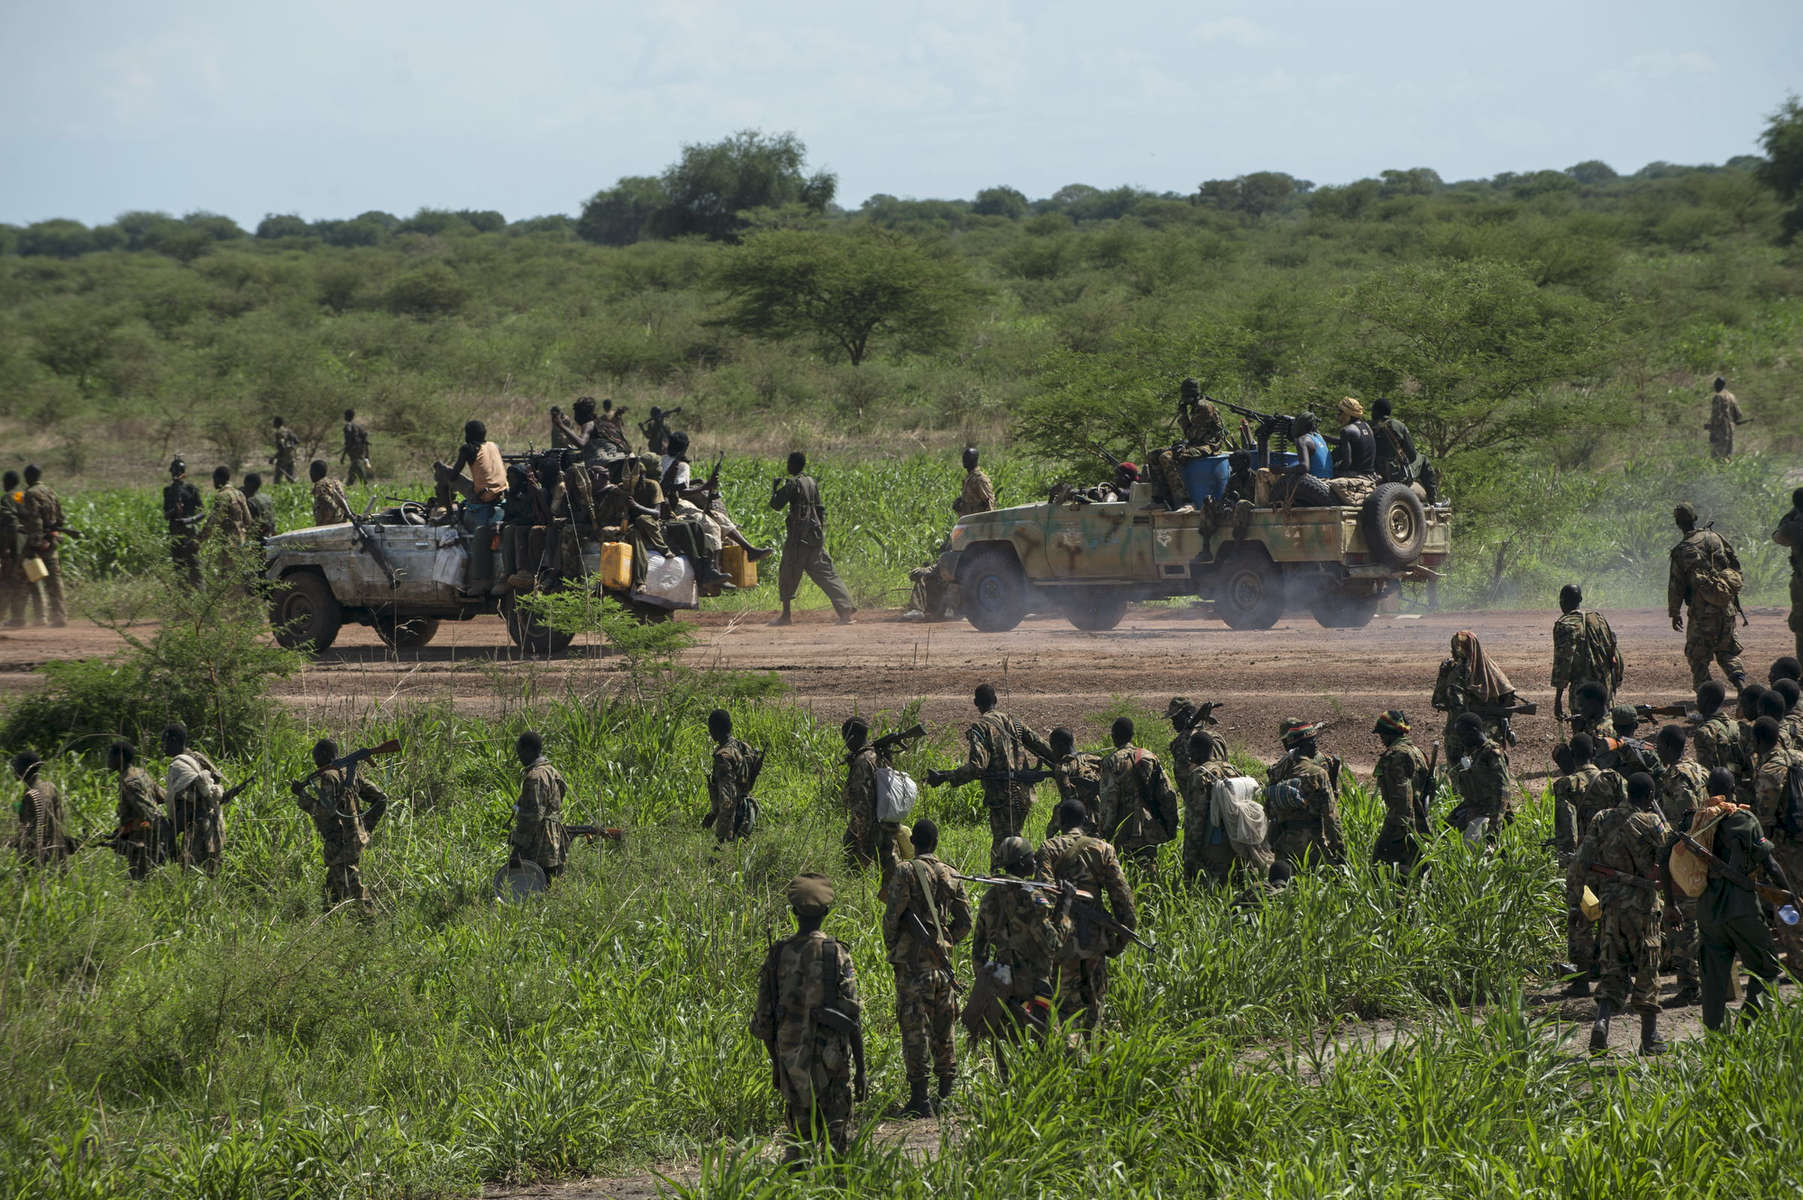 Soldiers with the Sudanese Peoples Liberation Army march towards the town of Bentiu in an effort to retake the town from rebel forces loyal to Riek Marchar only days after United States Secretary of State met with South Sudanese President Salva Kiir to try to broker an end to the fighting in the ongoing civil war in South Sudan, May 4, 2014.  One million Southern Sudanese have been displaced from their homes as the civil war rages in the country, pitting ethnic Nu'er against Dinka.  (Credit: Lynsey Addario for The New York Times)